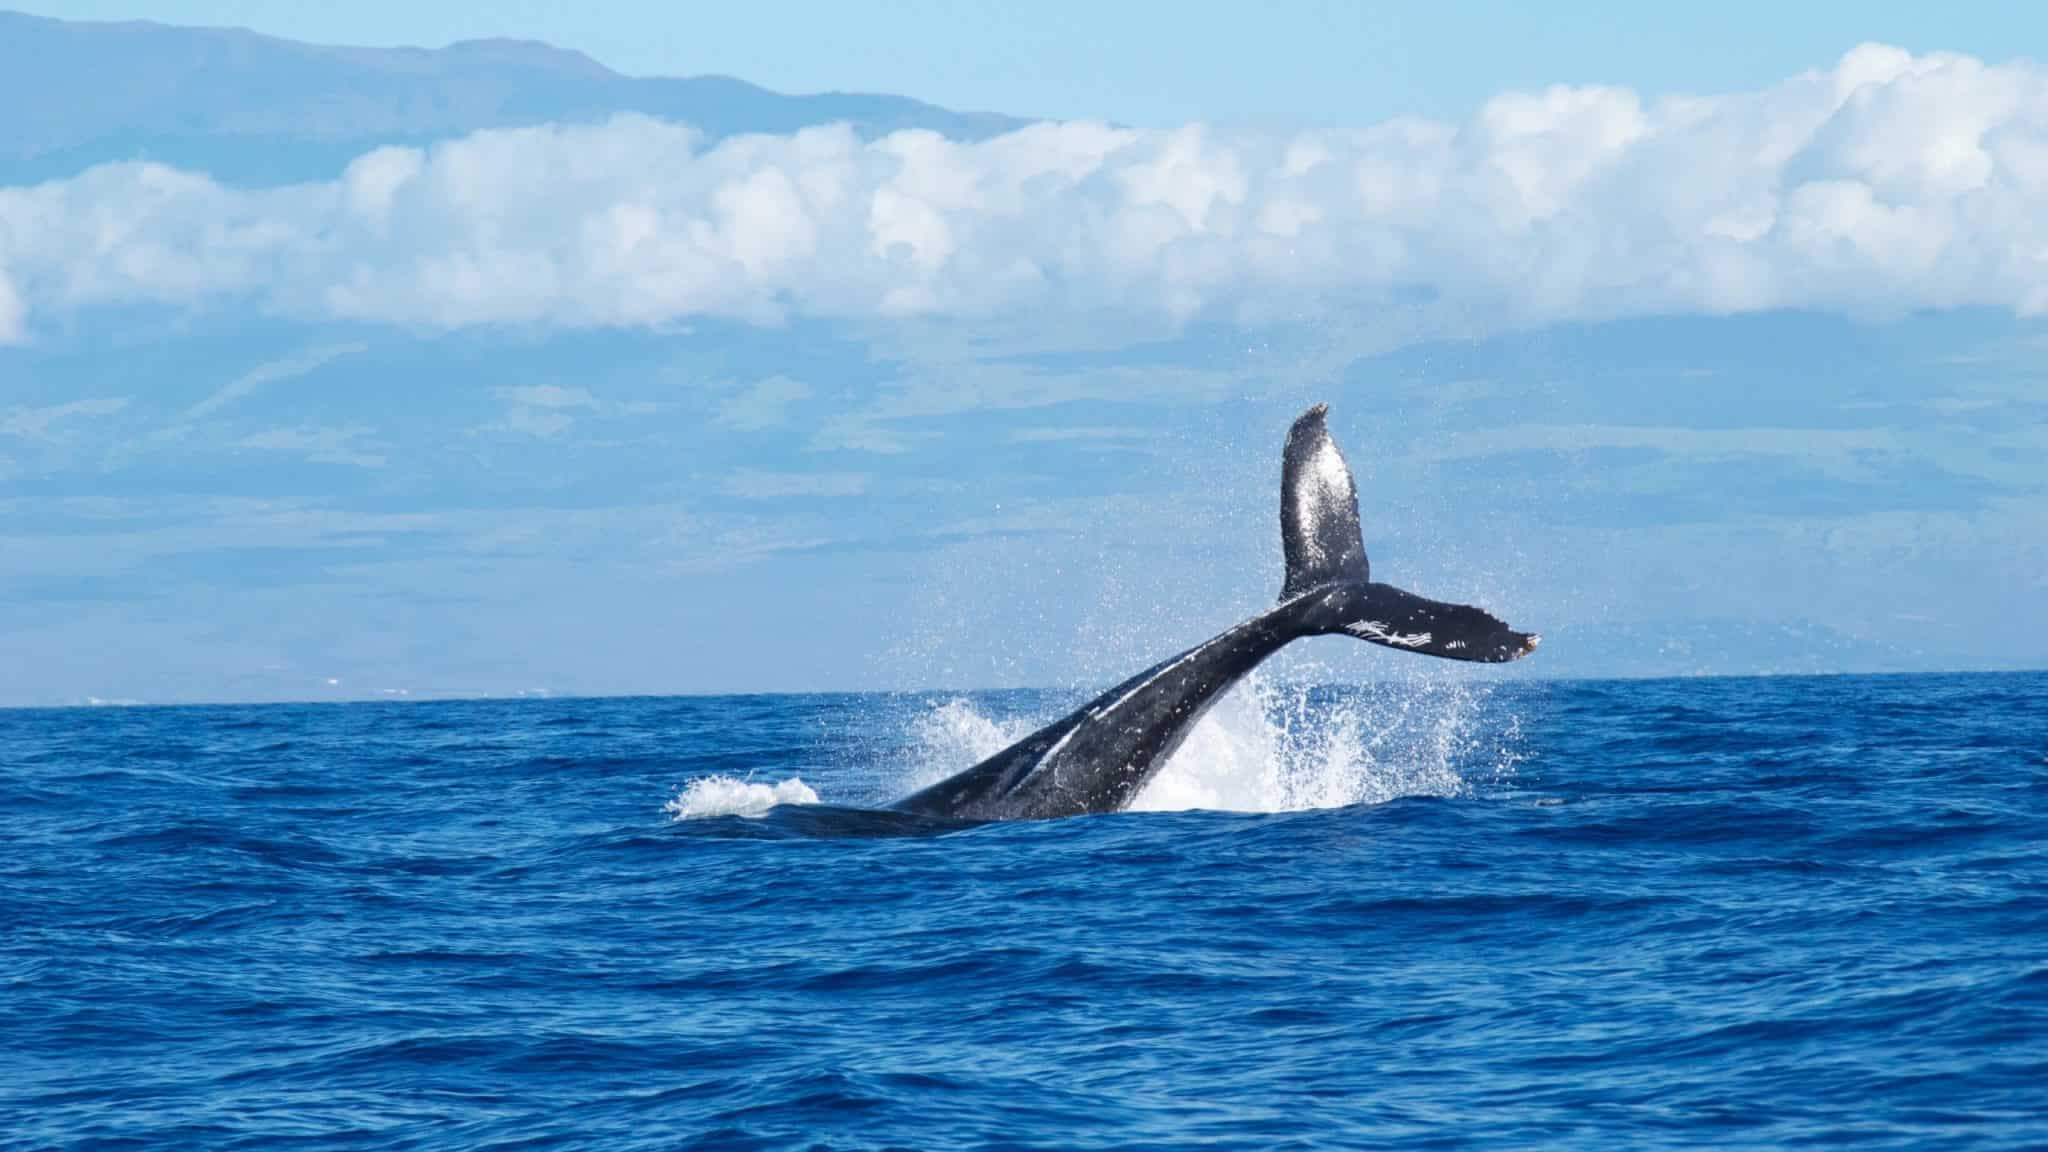 Whale Watching Things to do in Maui